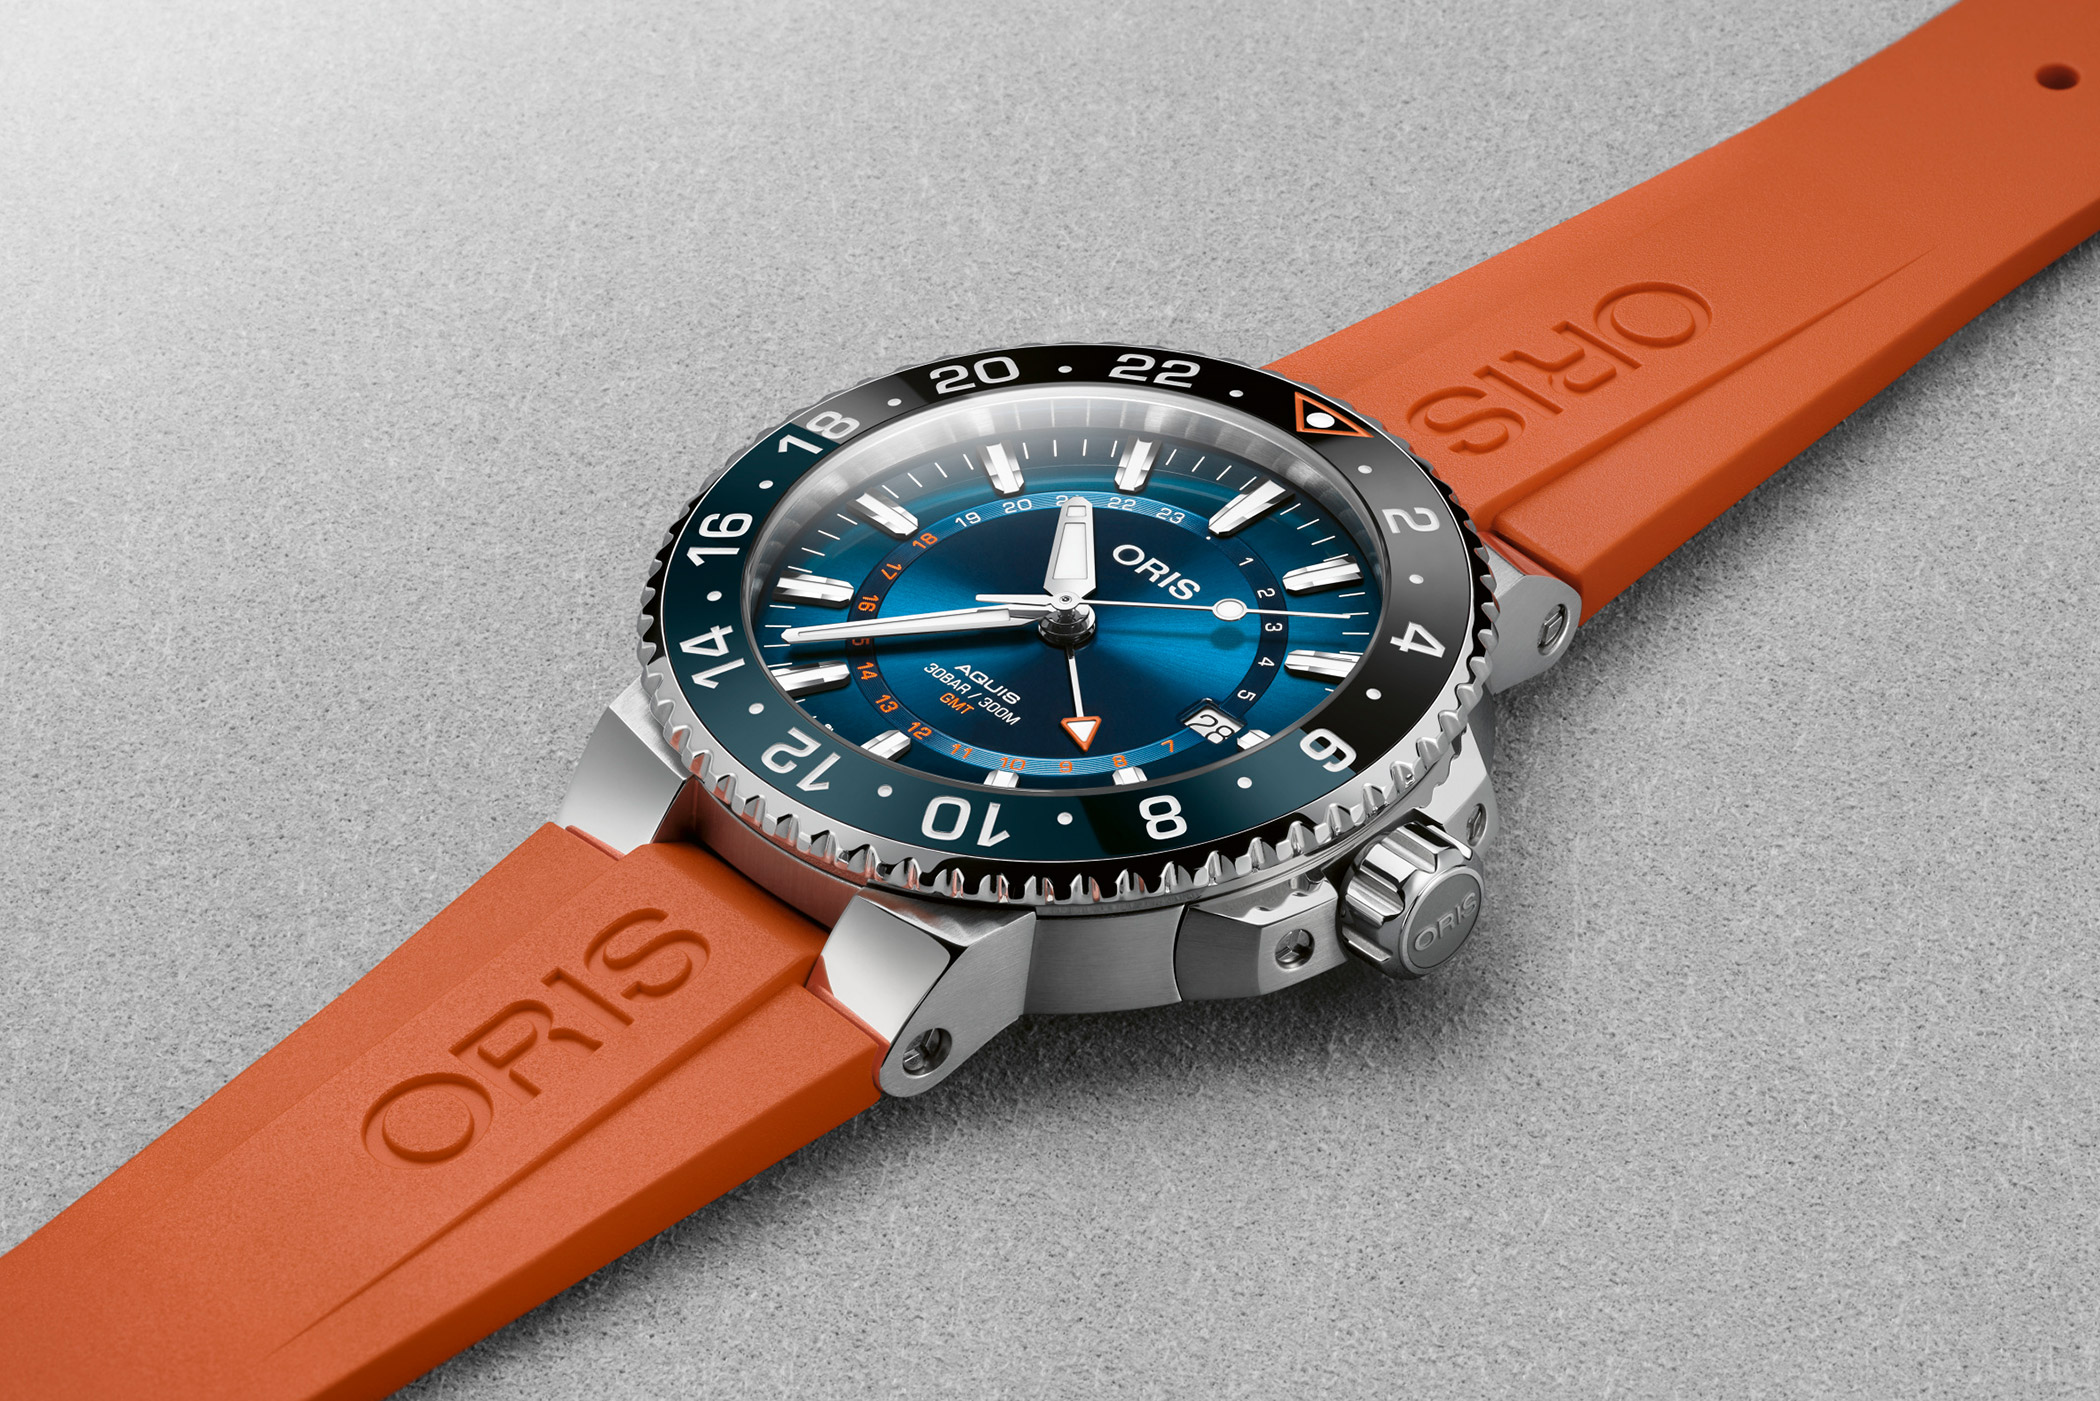 Oris-Carysfort-Reef-Limited-Edition-Support-Coral-Restoration-Foundation-1.jpg